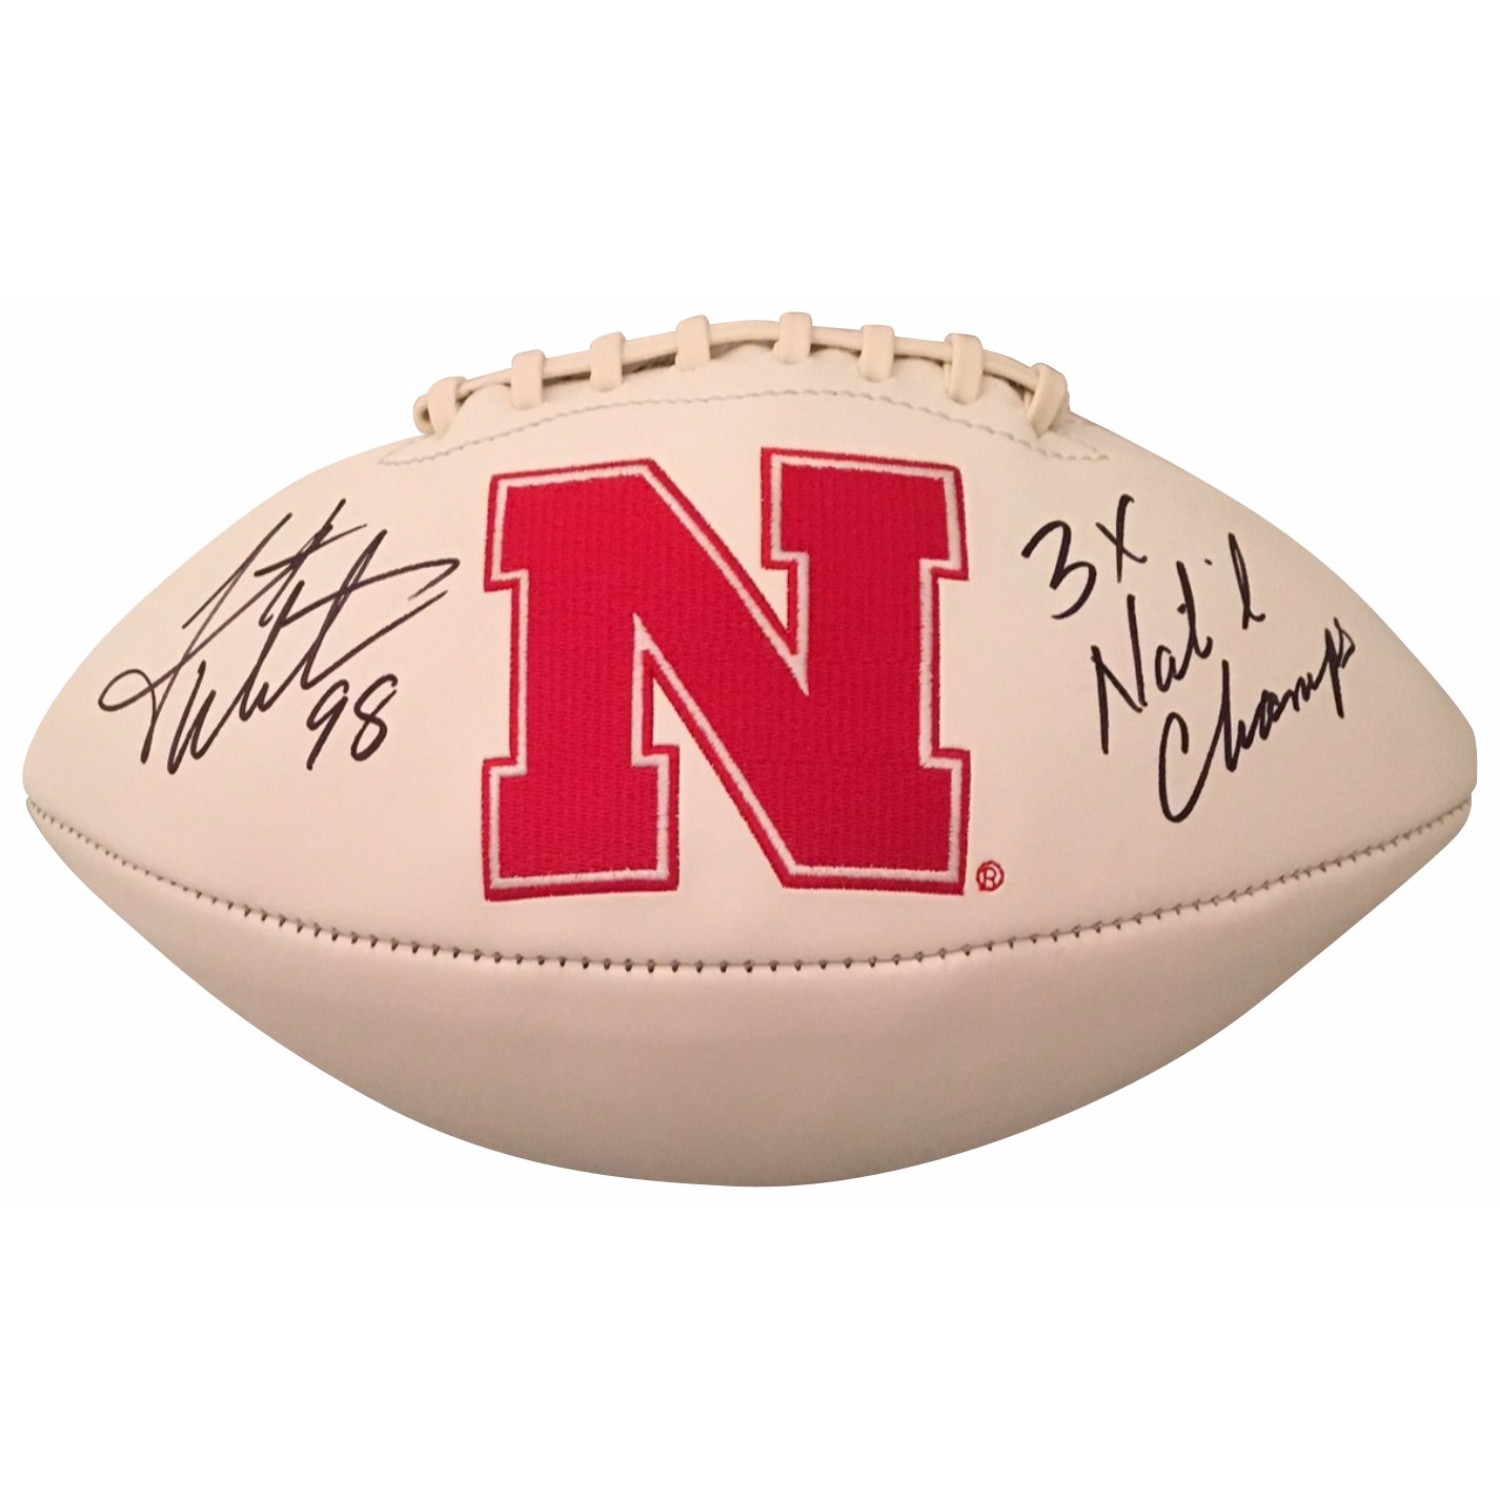 Grant Wistrom Autographed Nebraska Signed Logo Football 3 X CHAMPS Former Nebraska 3 x NCAA Champion and College Football Hall of Famer Grant Wistrom has signed this officially licensed Nebraska full size white panel logo football and written 3 x NATL CHAMP. Autographed on 9/29/17. Item will come with a photo of Grant signing this type of item and a COA from Powers Sports Memorabilia who conducted the signing.